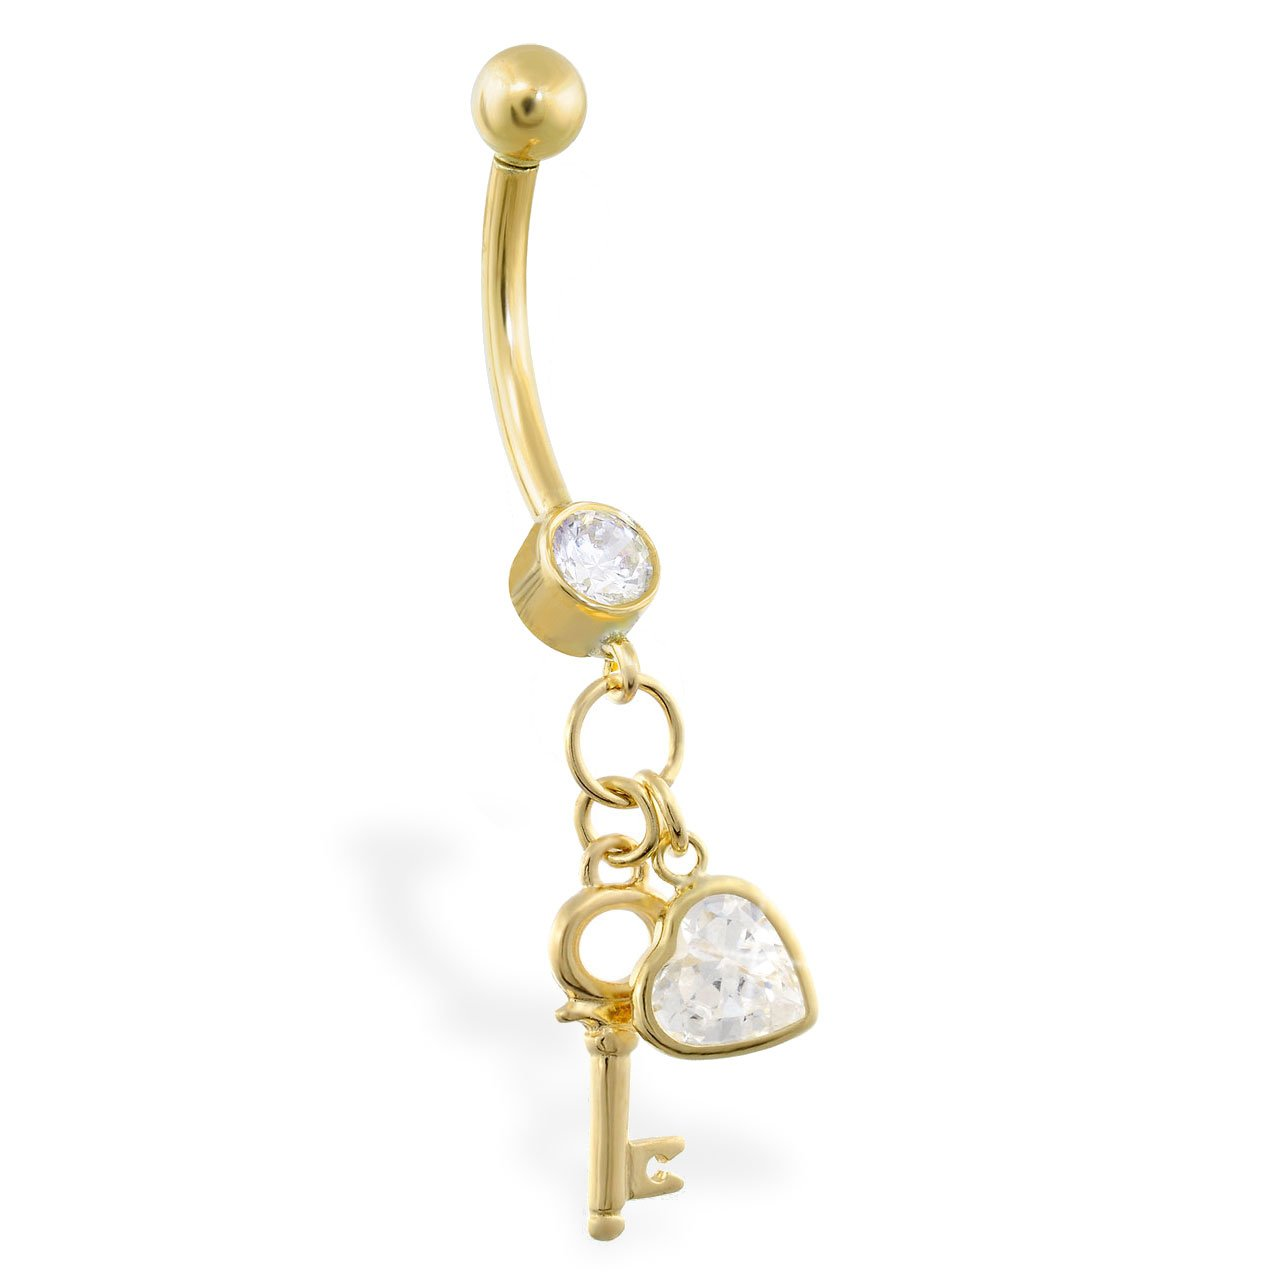 MsPiercing 14K Gold Belly Ring With Dangling CZ Jeweled Heart And Key 14K Yellow Gold Mr.Piercing Belly Button Rings pr/_sku/_185736